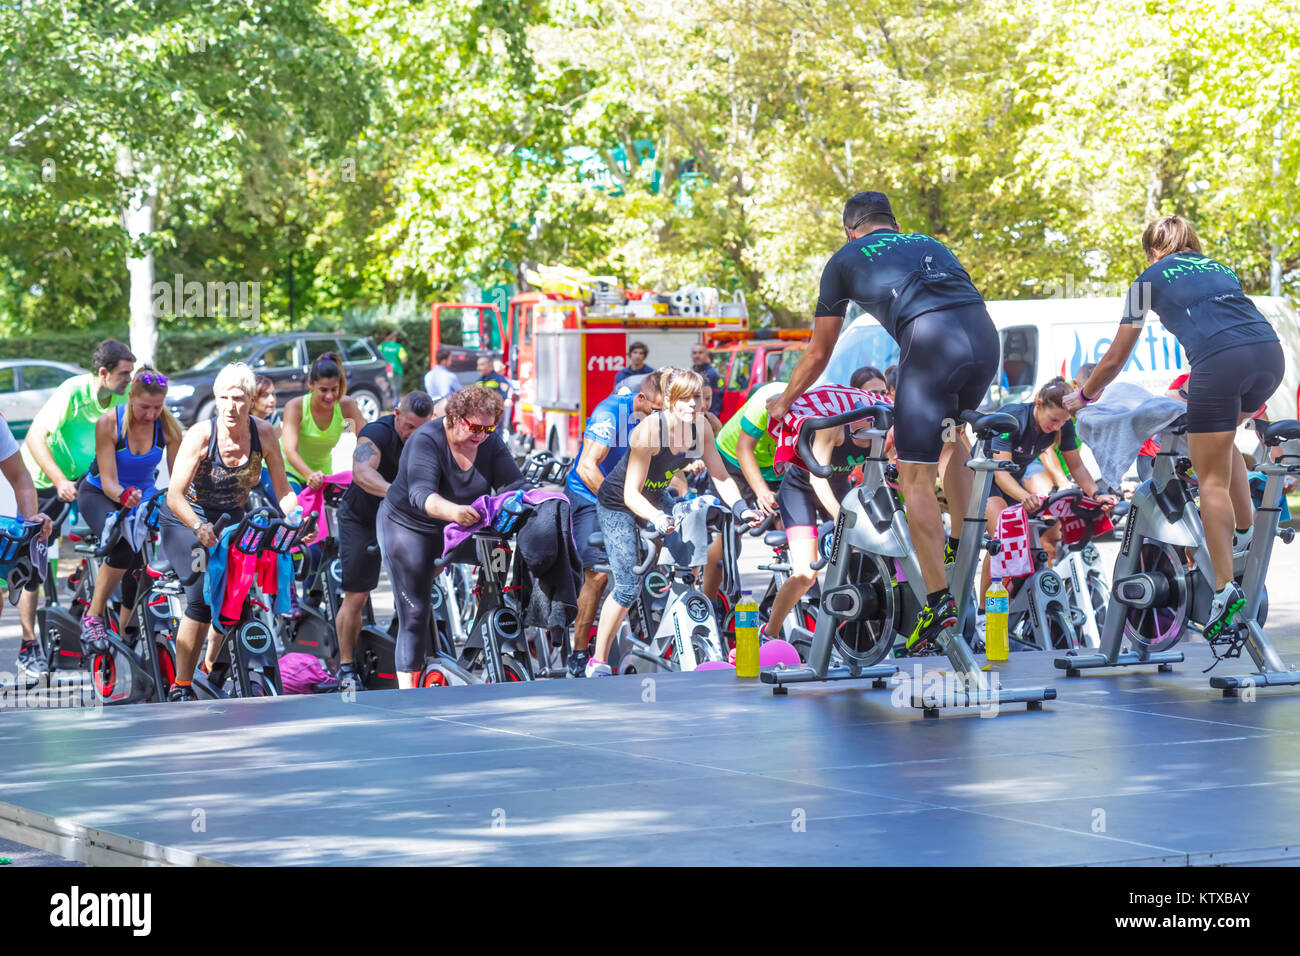 Zamora, Spain - September 02, 2017: People perform a spinning session outdoors in an urban park. Cycle Against Cancer. Stock Photo